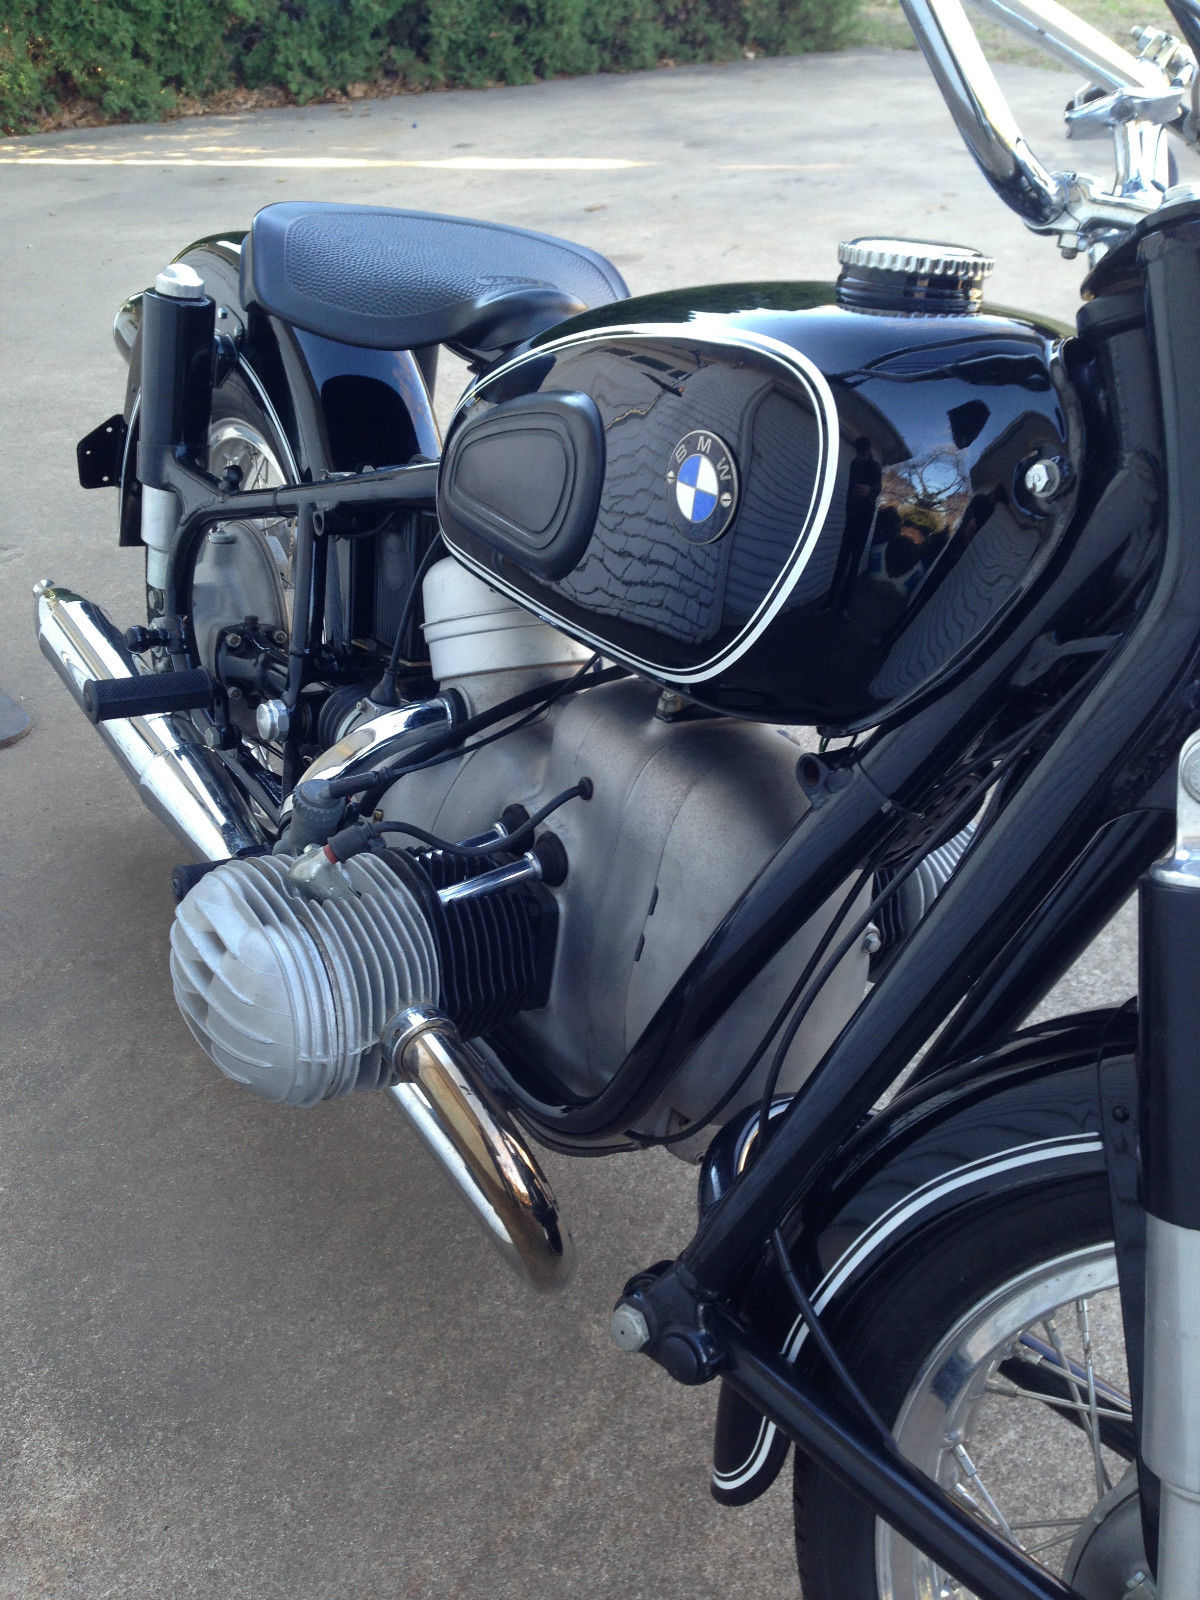 BMW R60/2 - 1967 - BMW Badge, Header, Frame and Engine.